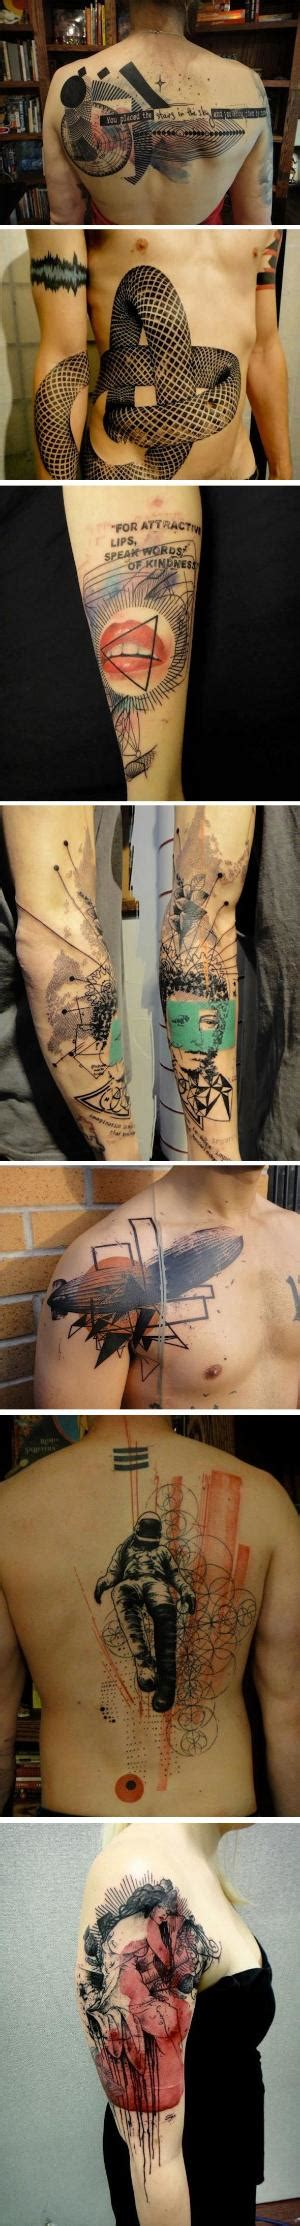 impressionist tattoo tattoos by xoil at needles side in by